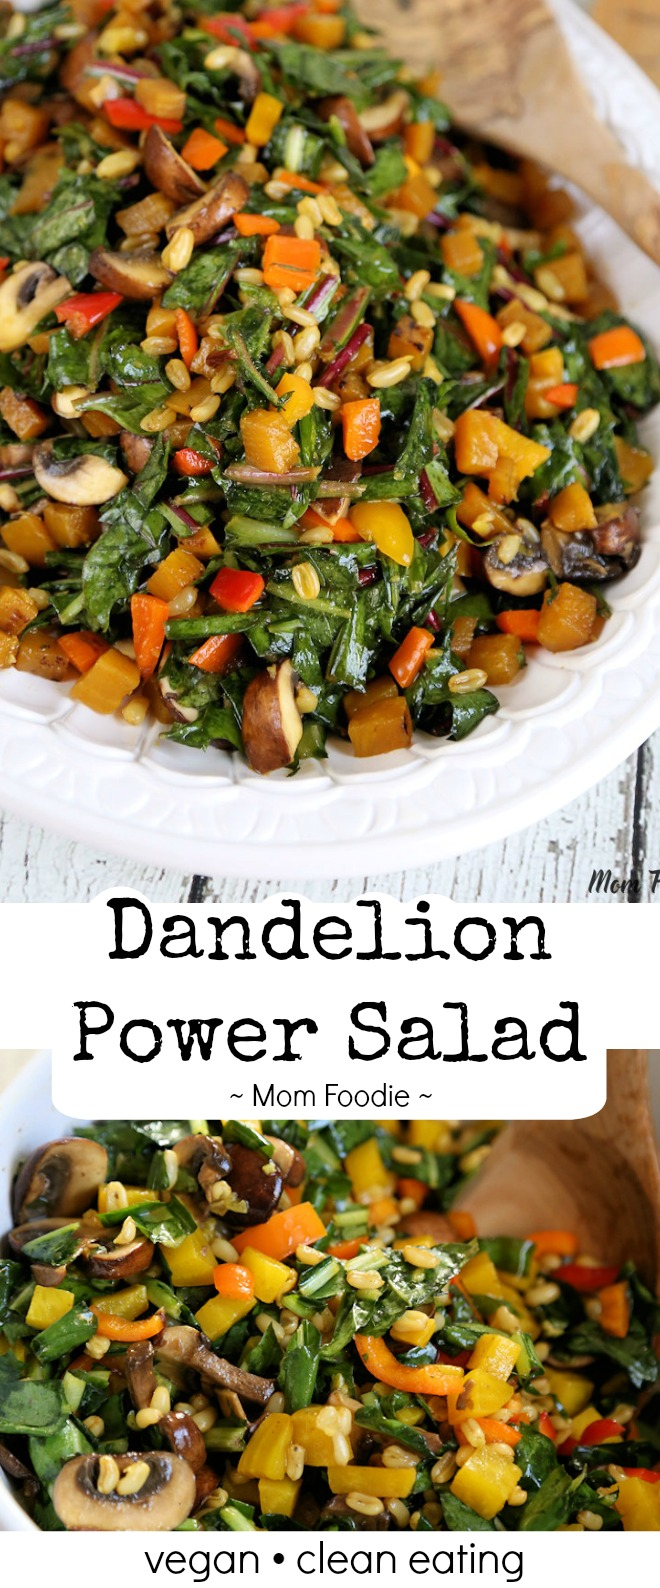 Dandelion Greens salad recipe with golden beets, kamut, mushrooms & sweet peppers - easy dandelion salad dressing